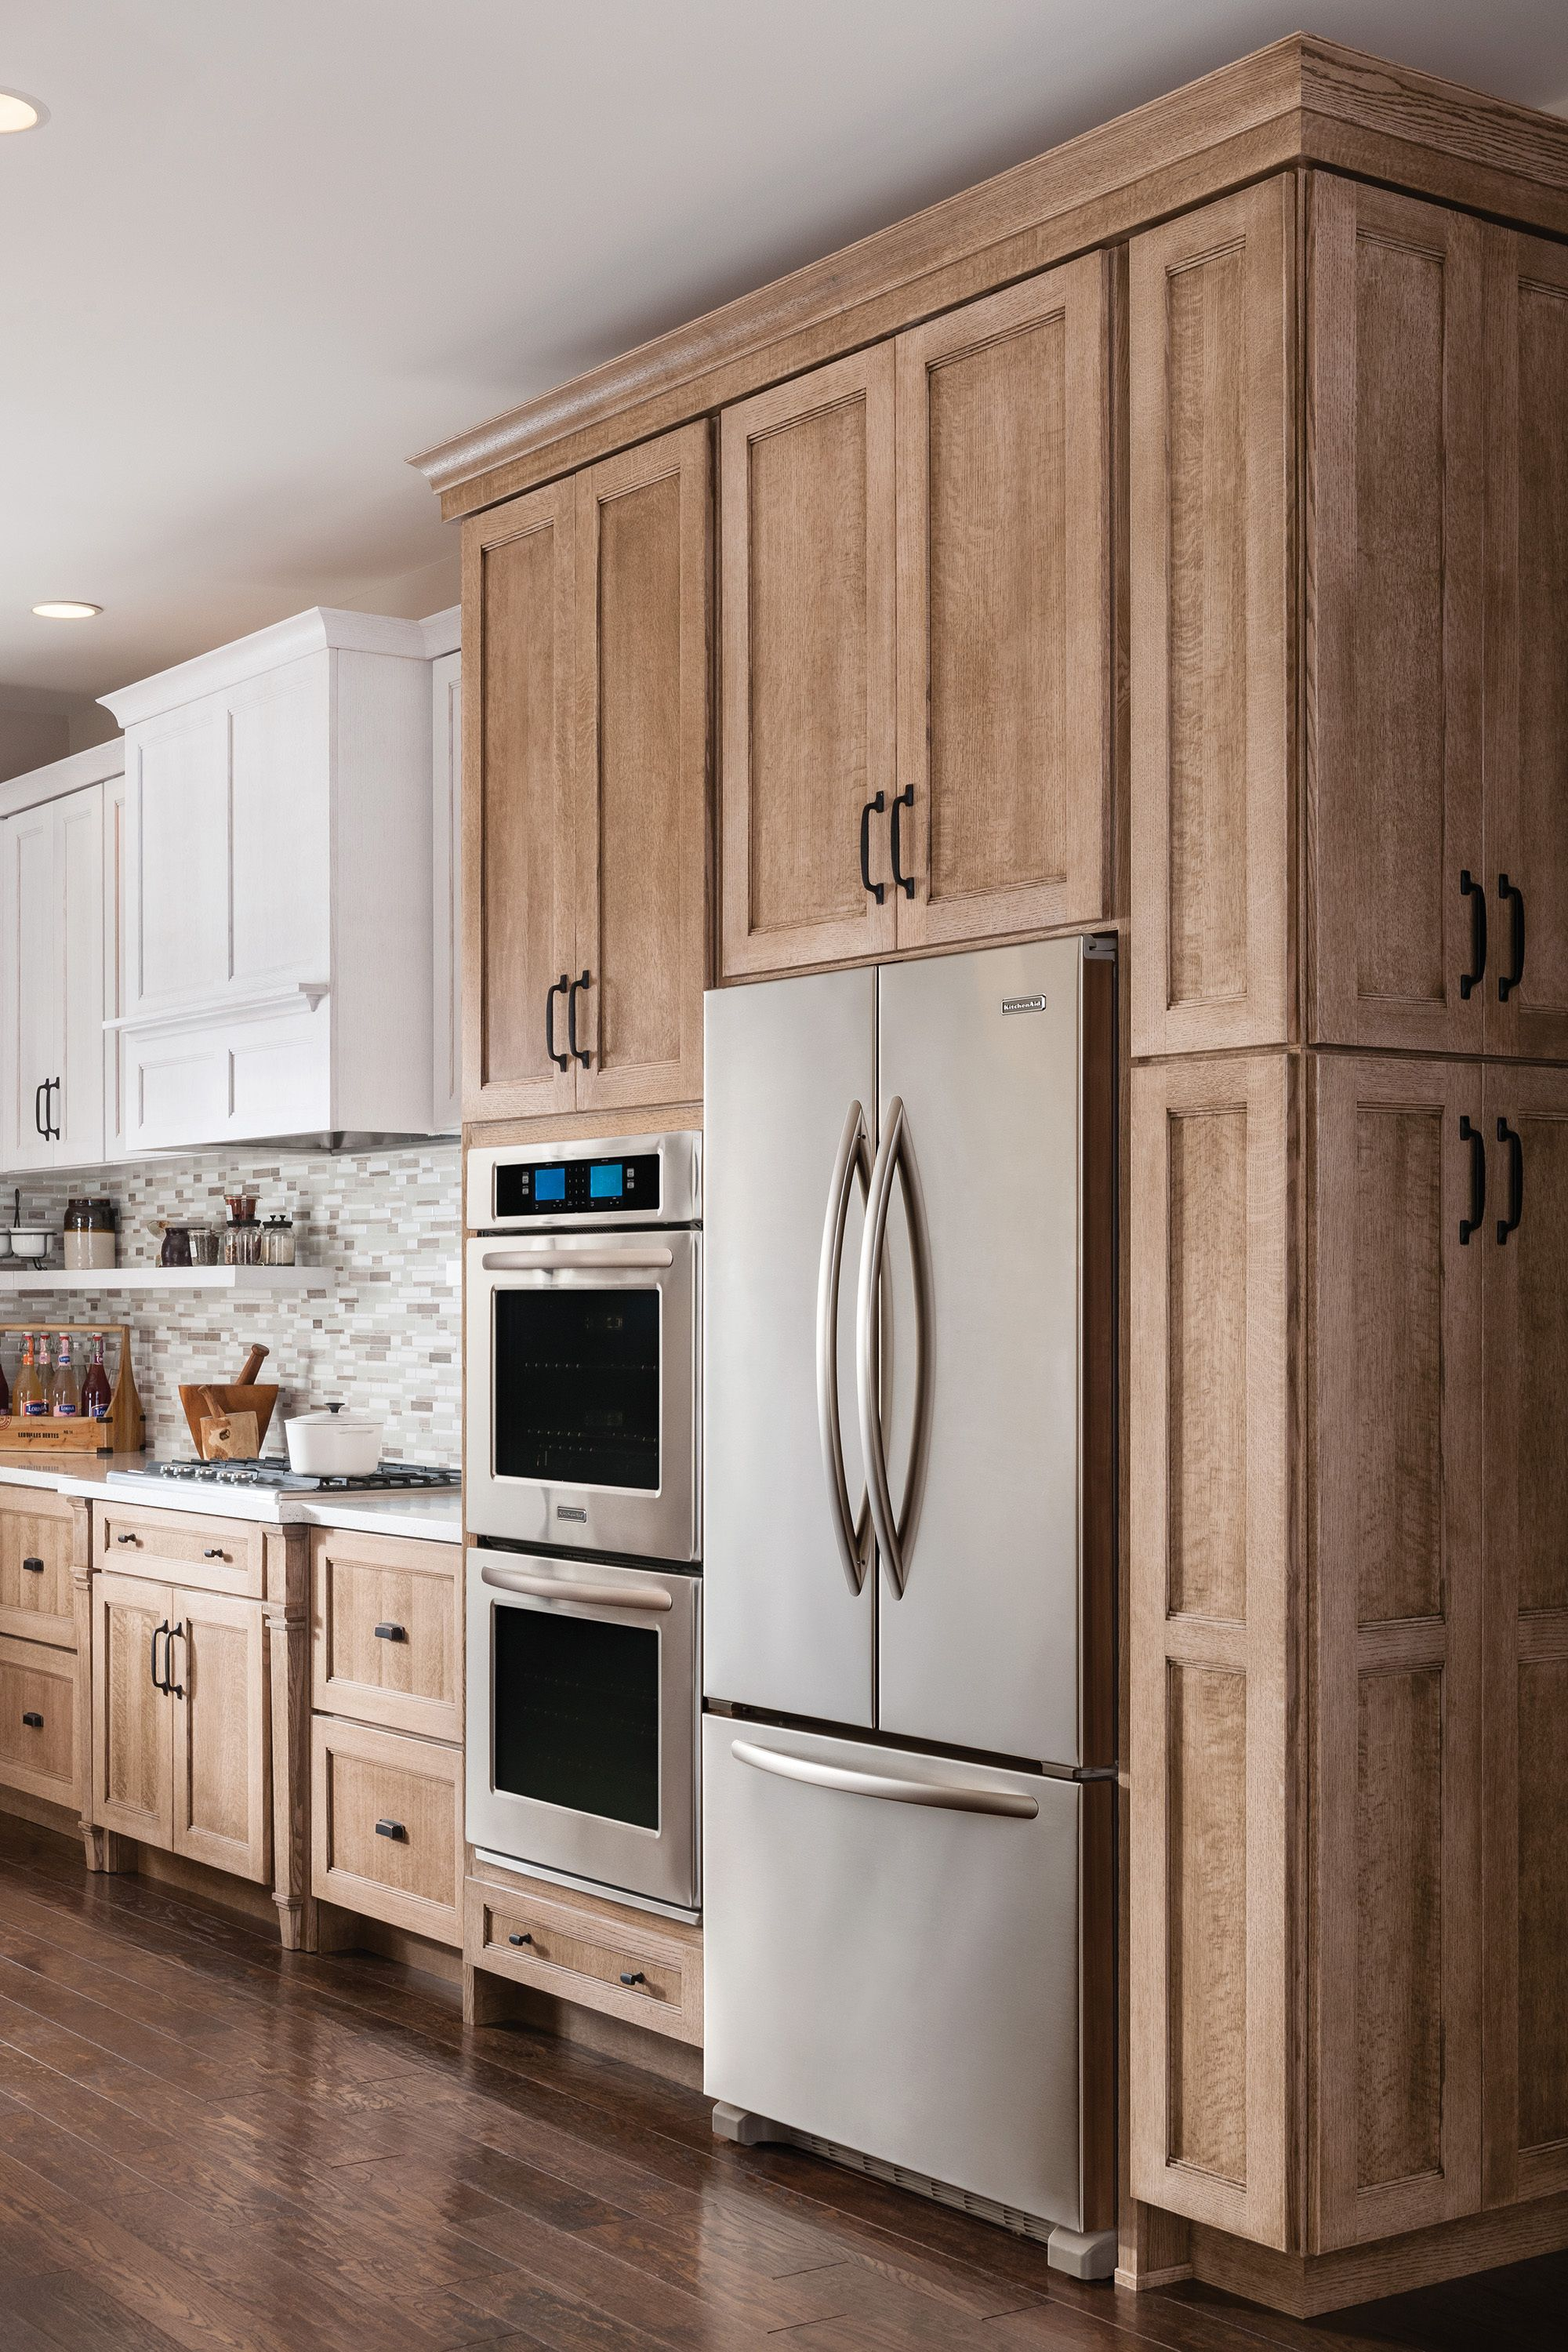 Schuler Cabinetry Launches New Cappuccino Finish Dream Kitchen Cabinets Brown Kitchen Cabinets Kitchen Cabinet Design